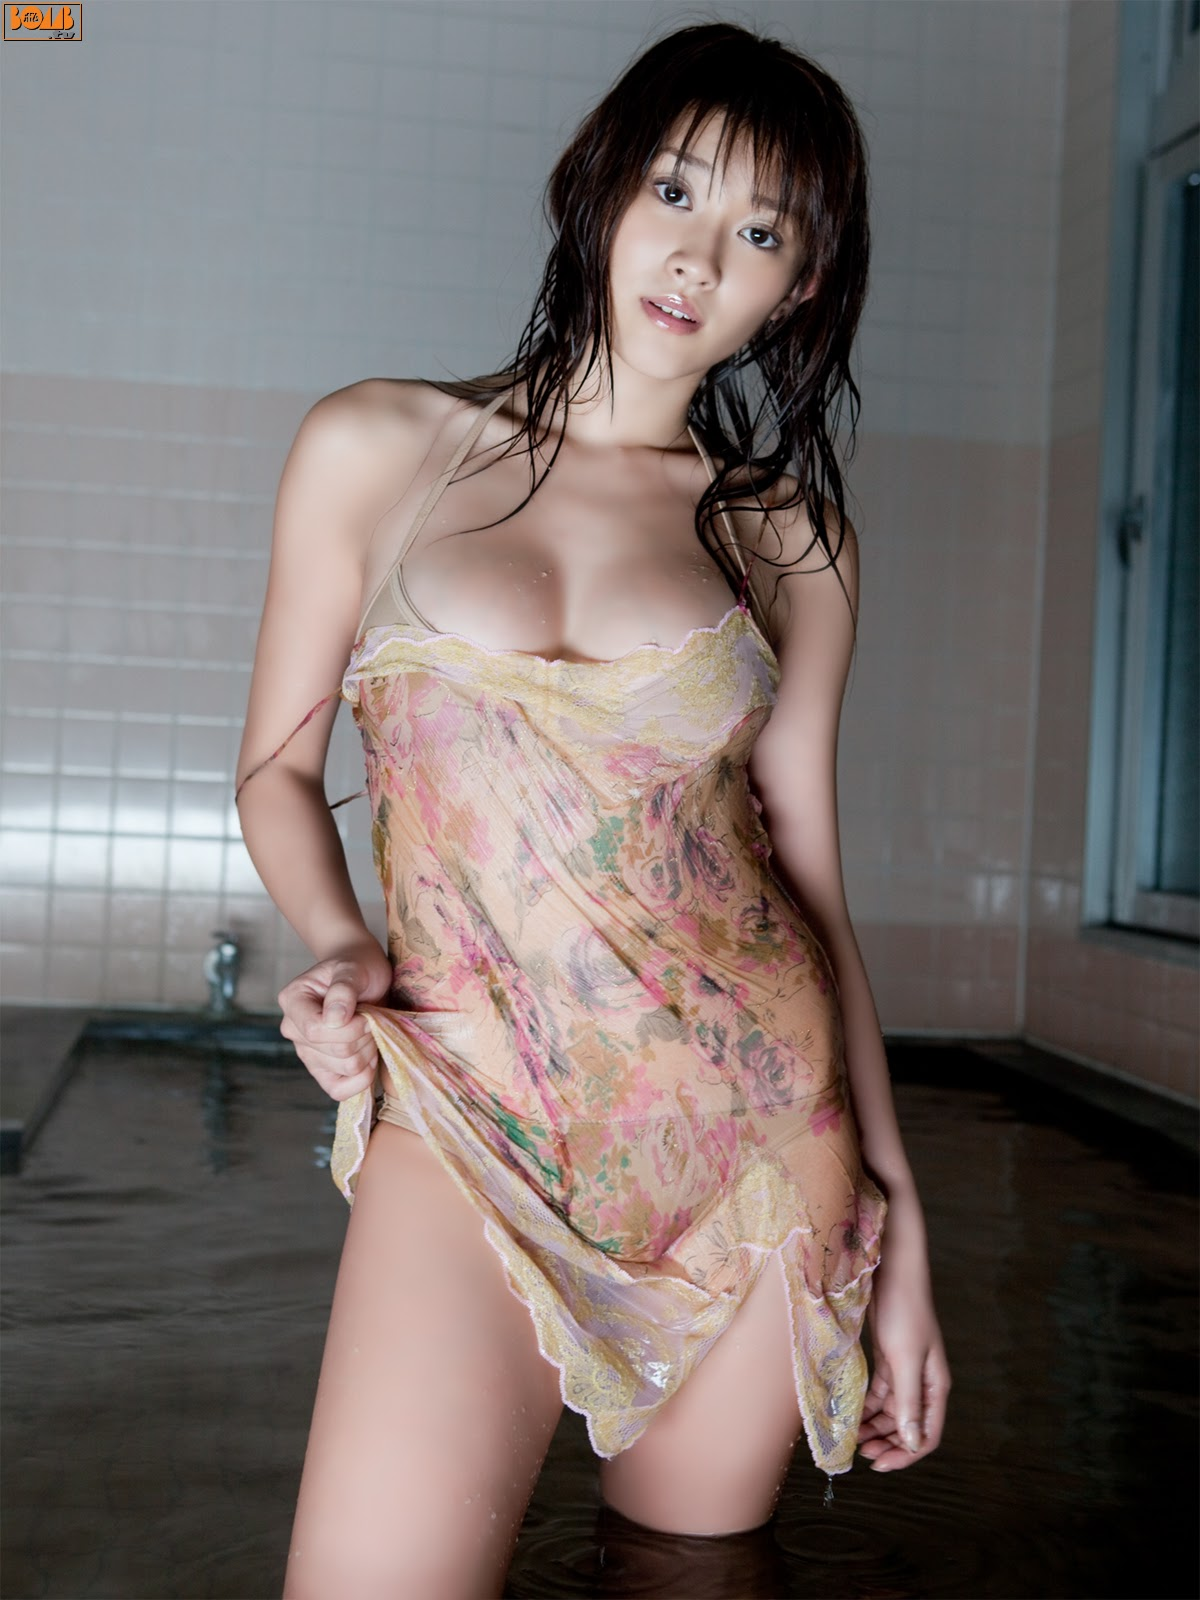 All kinds of redweathered skin sweaty skin smiles in the morning light Mikie Hara026